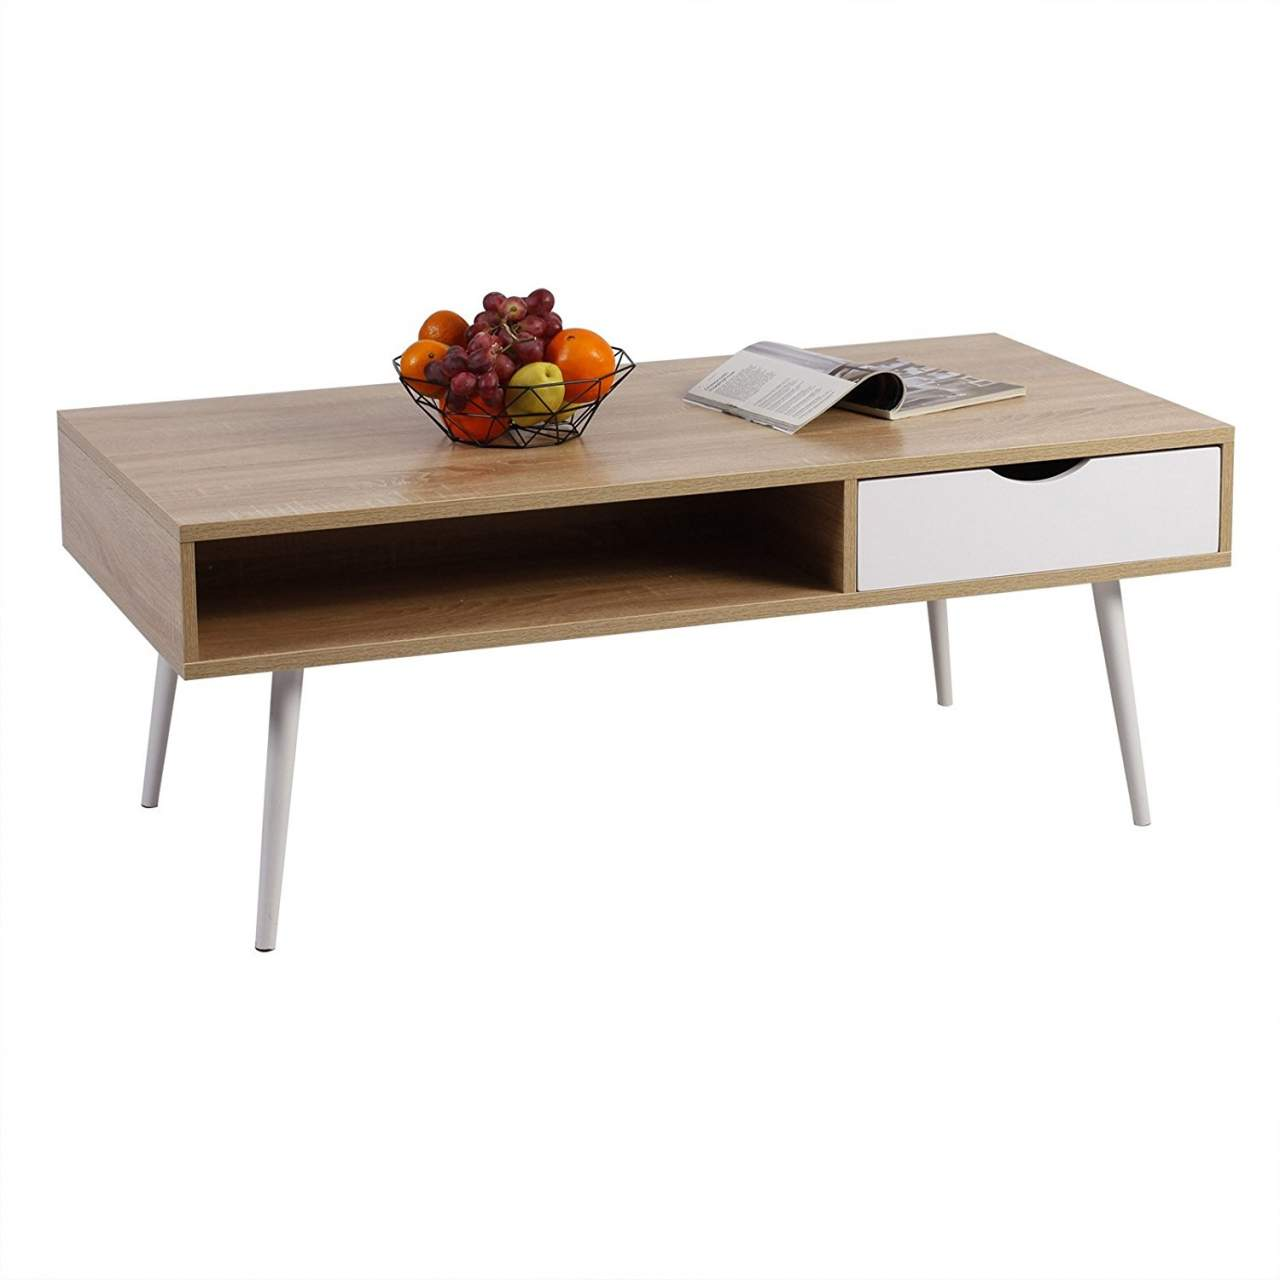 - Wooden Coffee Table With Drawer And Open Compartment Woltu.eu